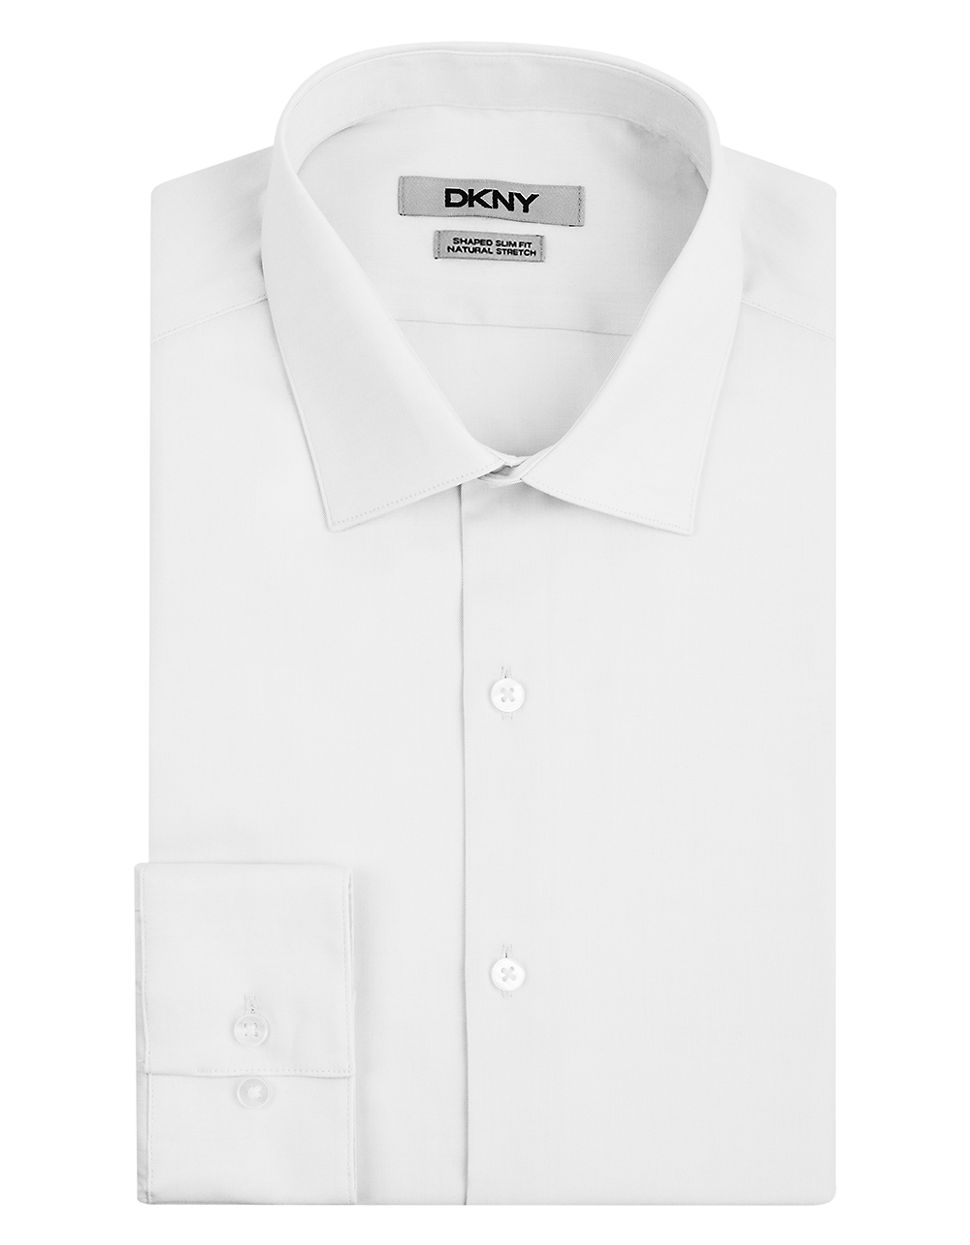 dkny white slim fit natural stretch dress shirt for men